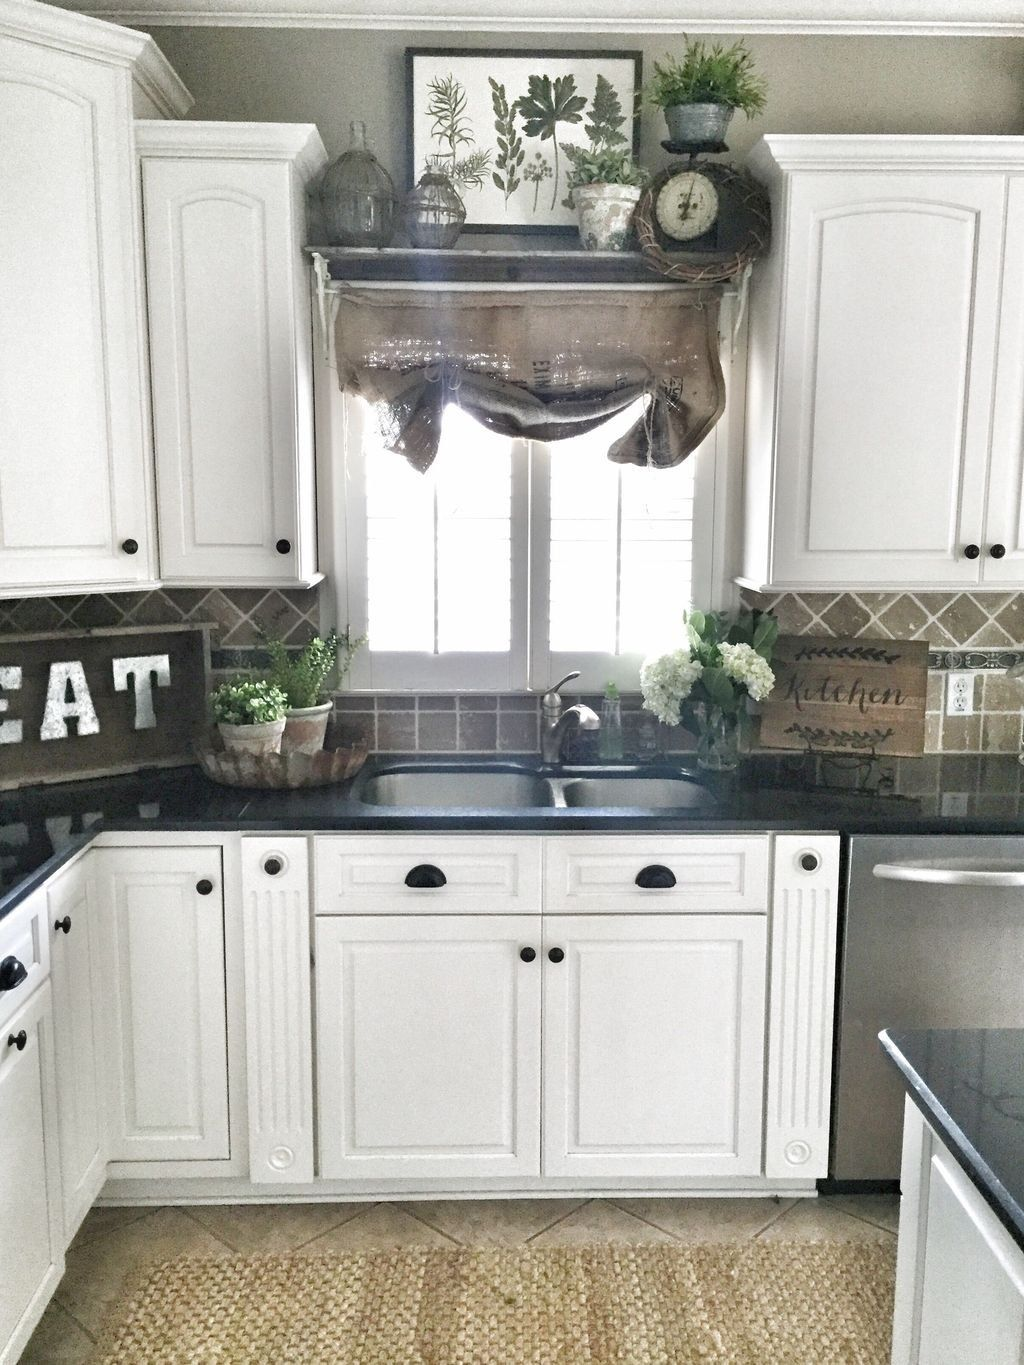 beautiful farmhouse kitchen makeover ideas on a budget 14 scrap booking farmhouse kitchen on farmhouse kitchen on a budget id=86348